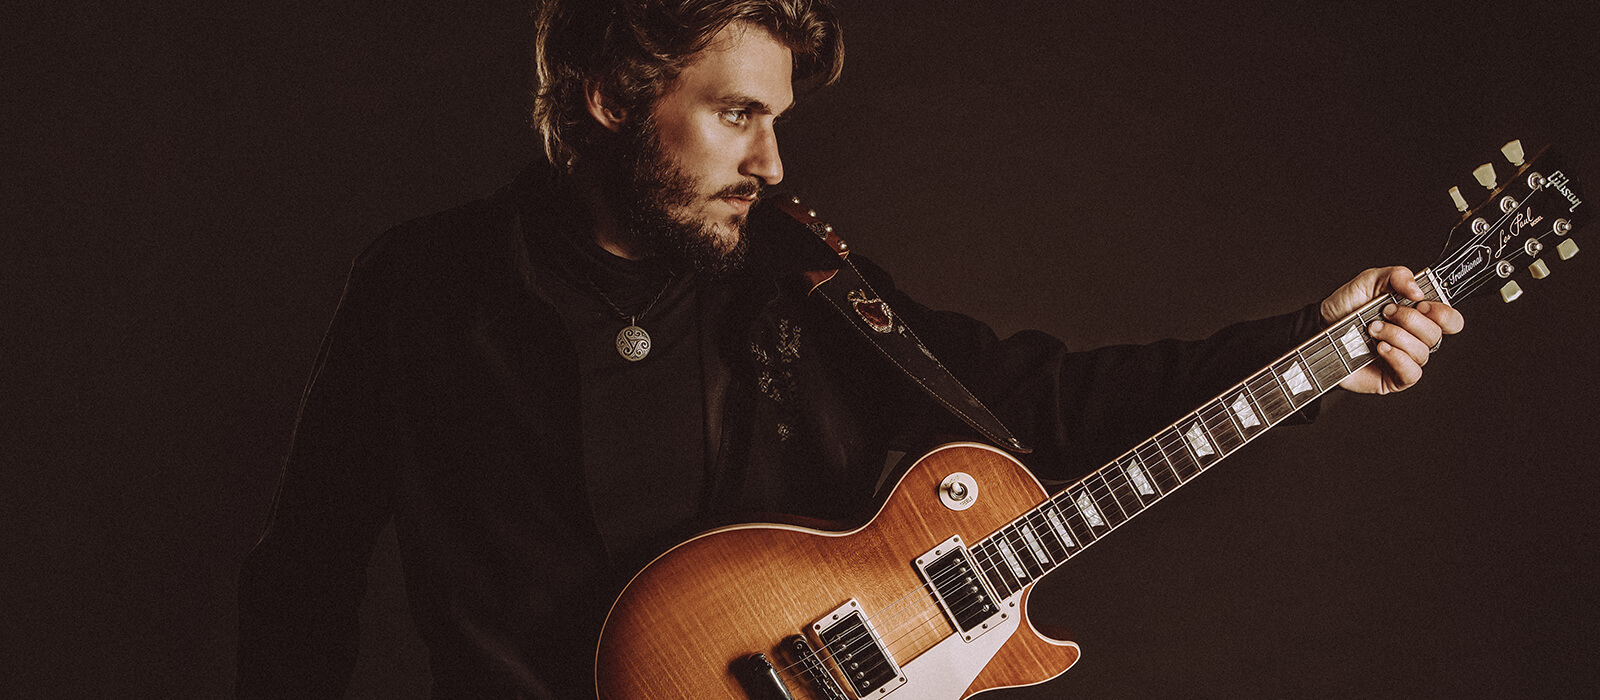 George Pennington with his Les Paul